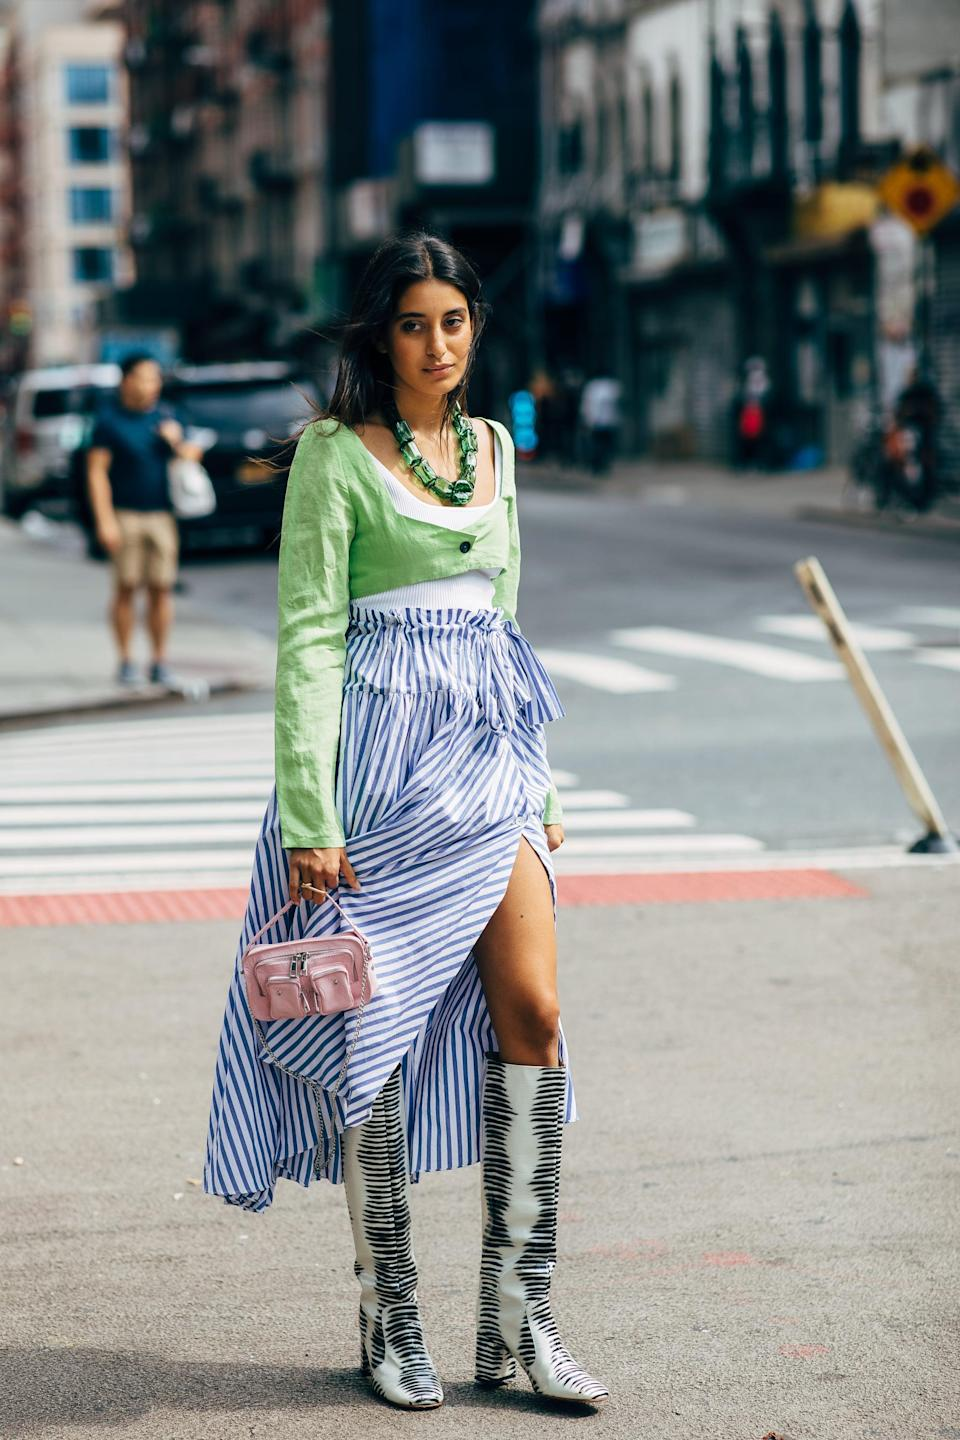 <p>Take an inherently summery look, like blue and white stripes, and add boots to mix it up.</p>